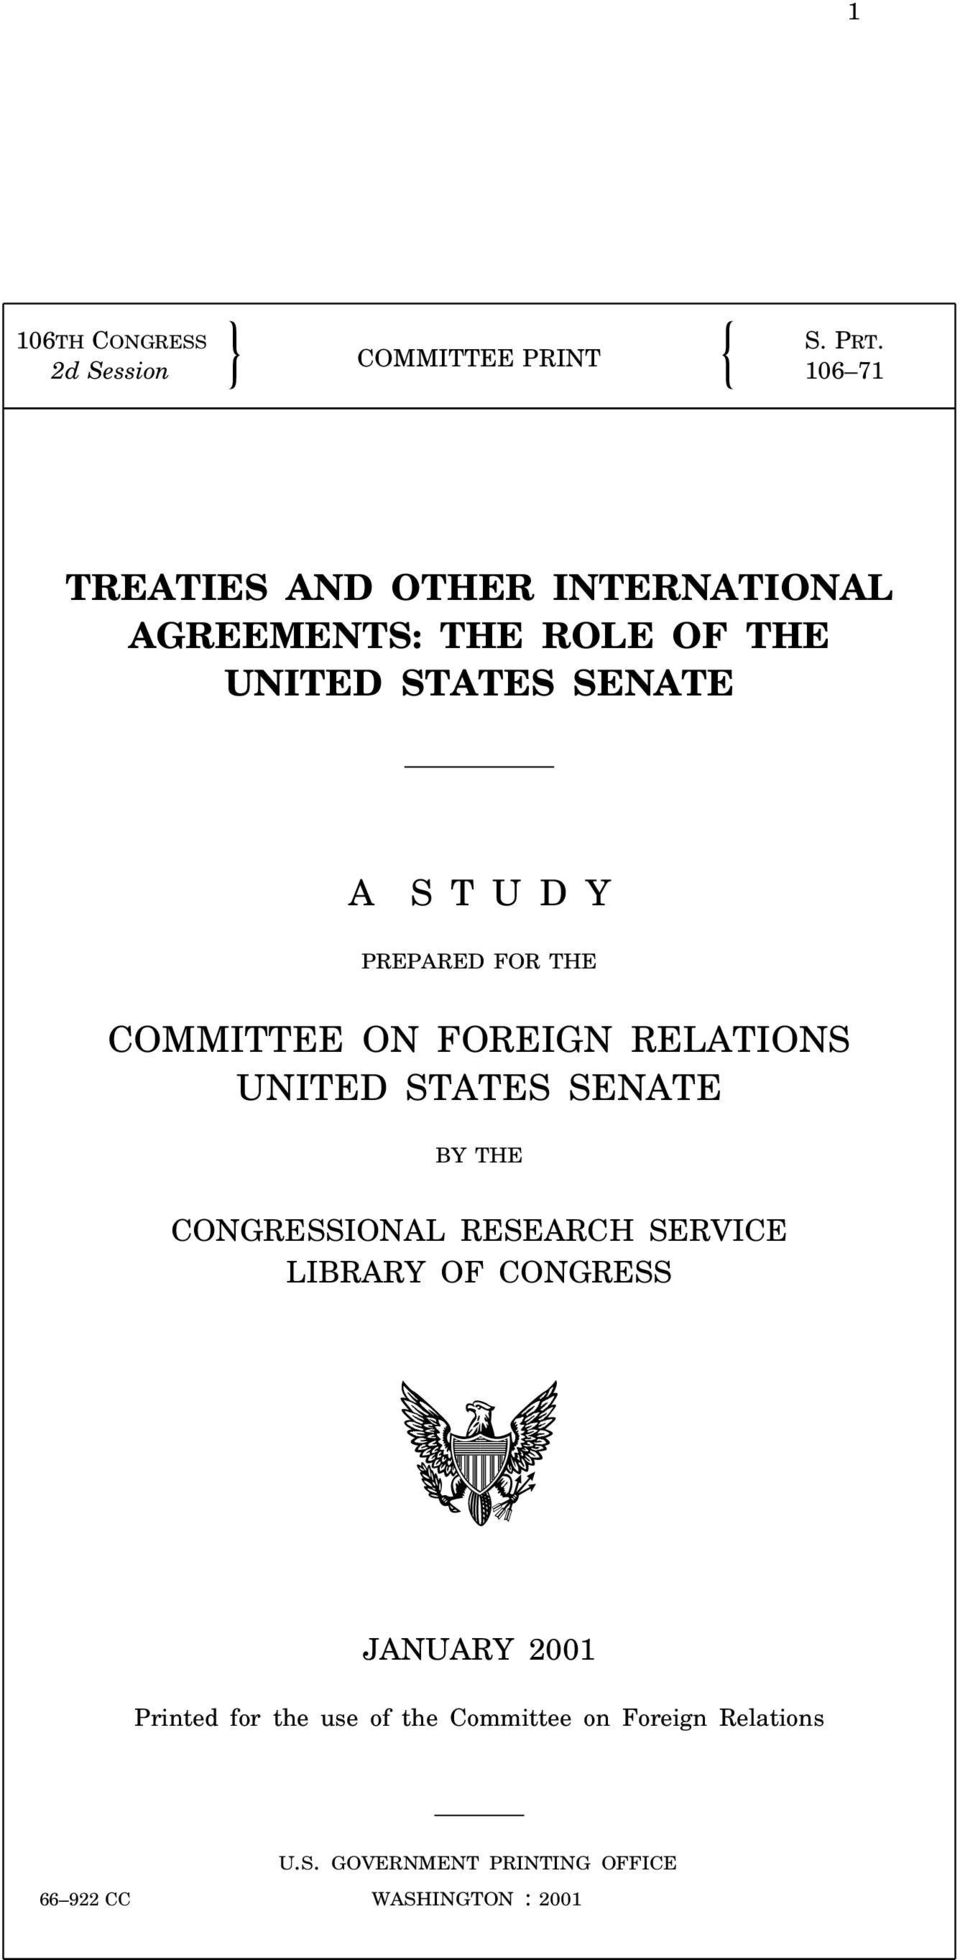 FOREIGN RELATIONS UNITED STATES SENATE BY THE CONGRESSIONAL RESEARCH SERVICE LIBRARY OF CONGRESS JANUARY 2001 Printed for the use of